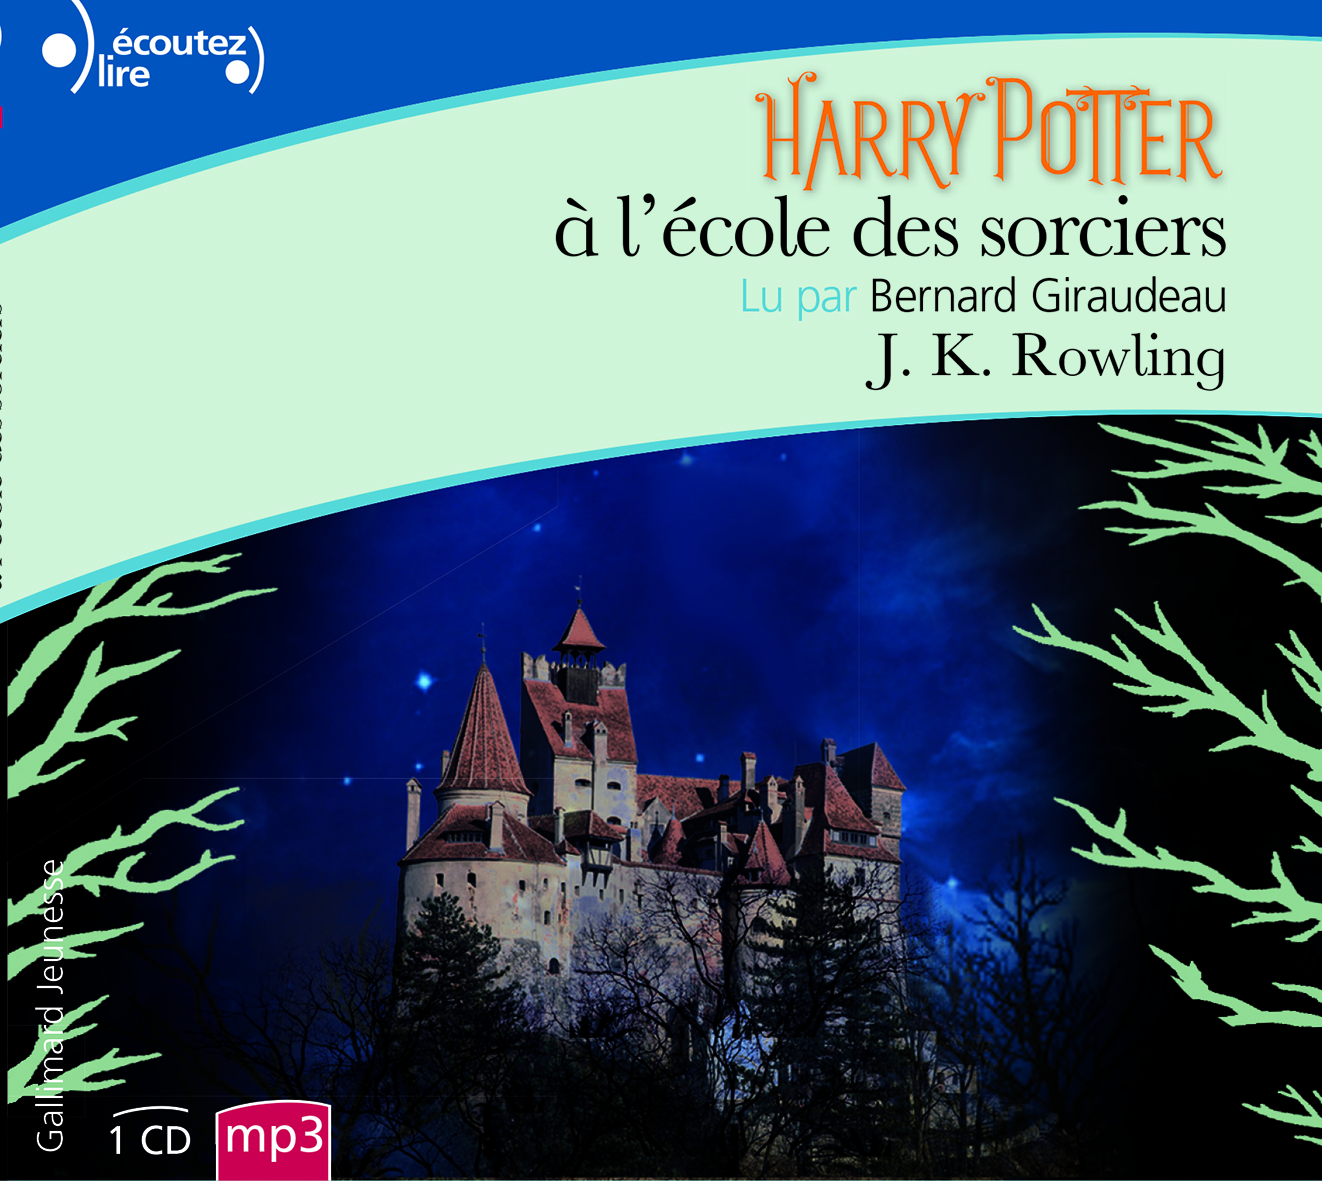 HARRY POTTER, I : HARRY POTTER A L'ECOLE DES SORCIERS